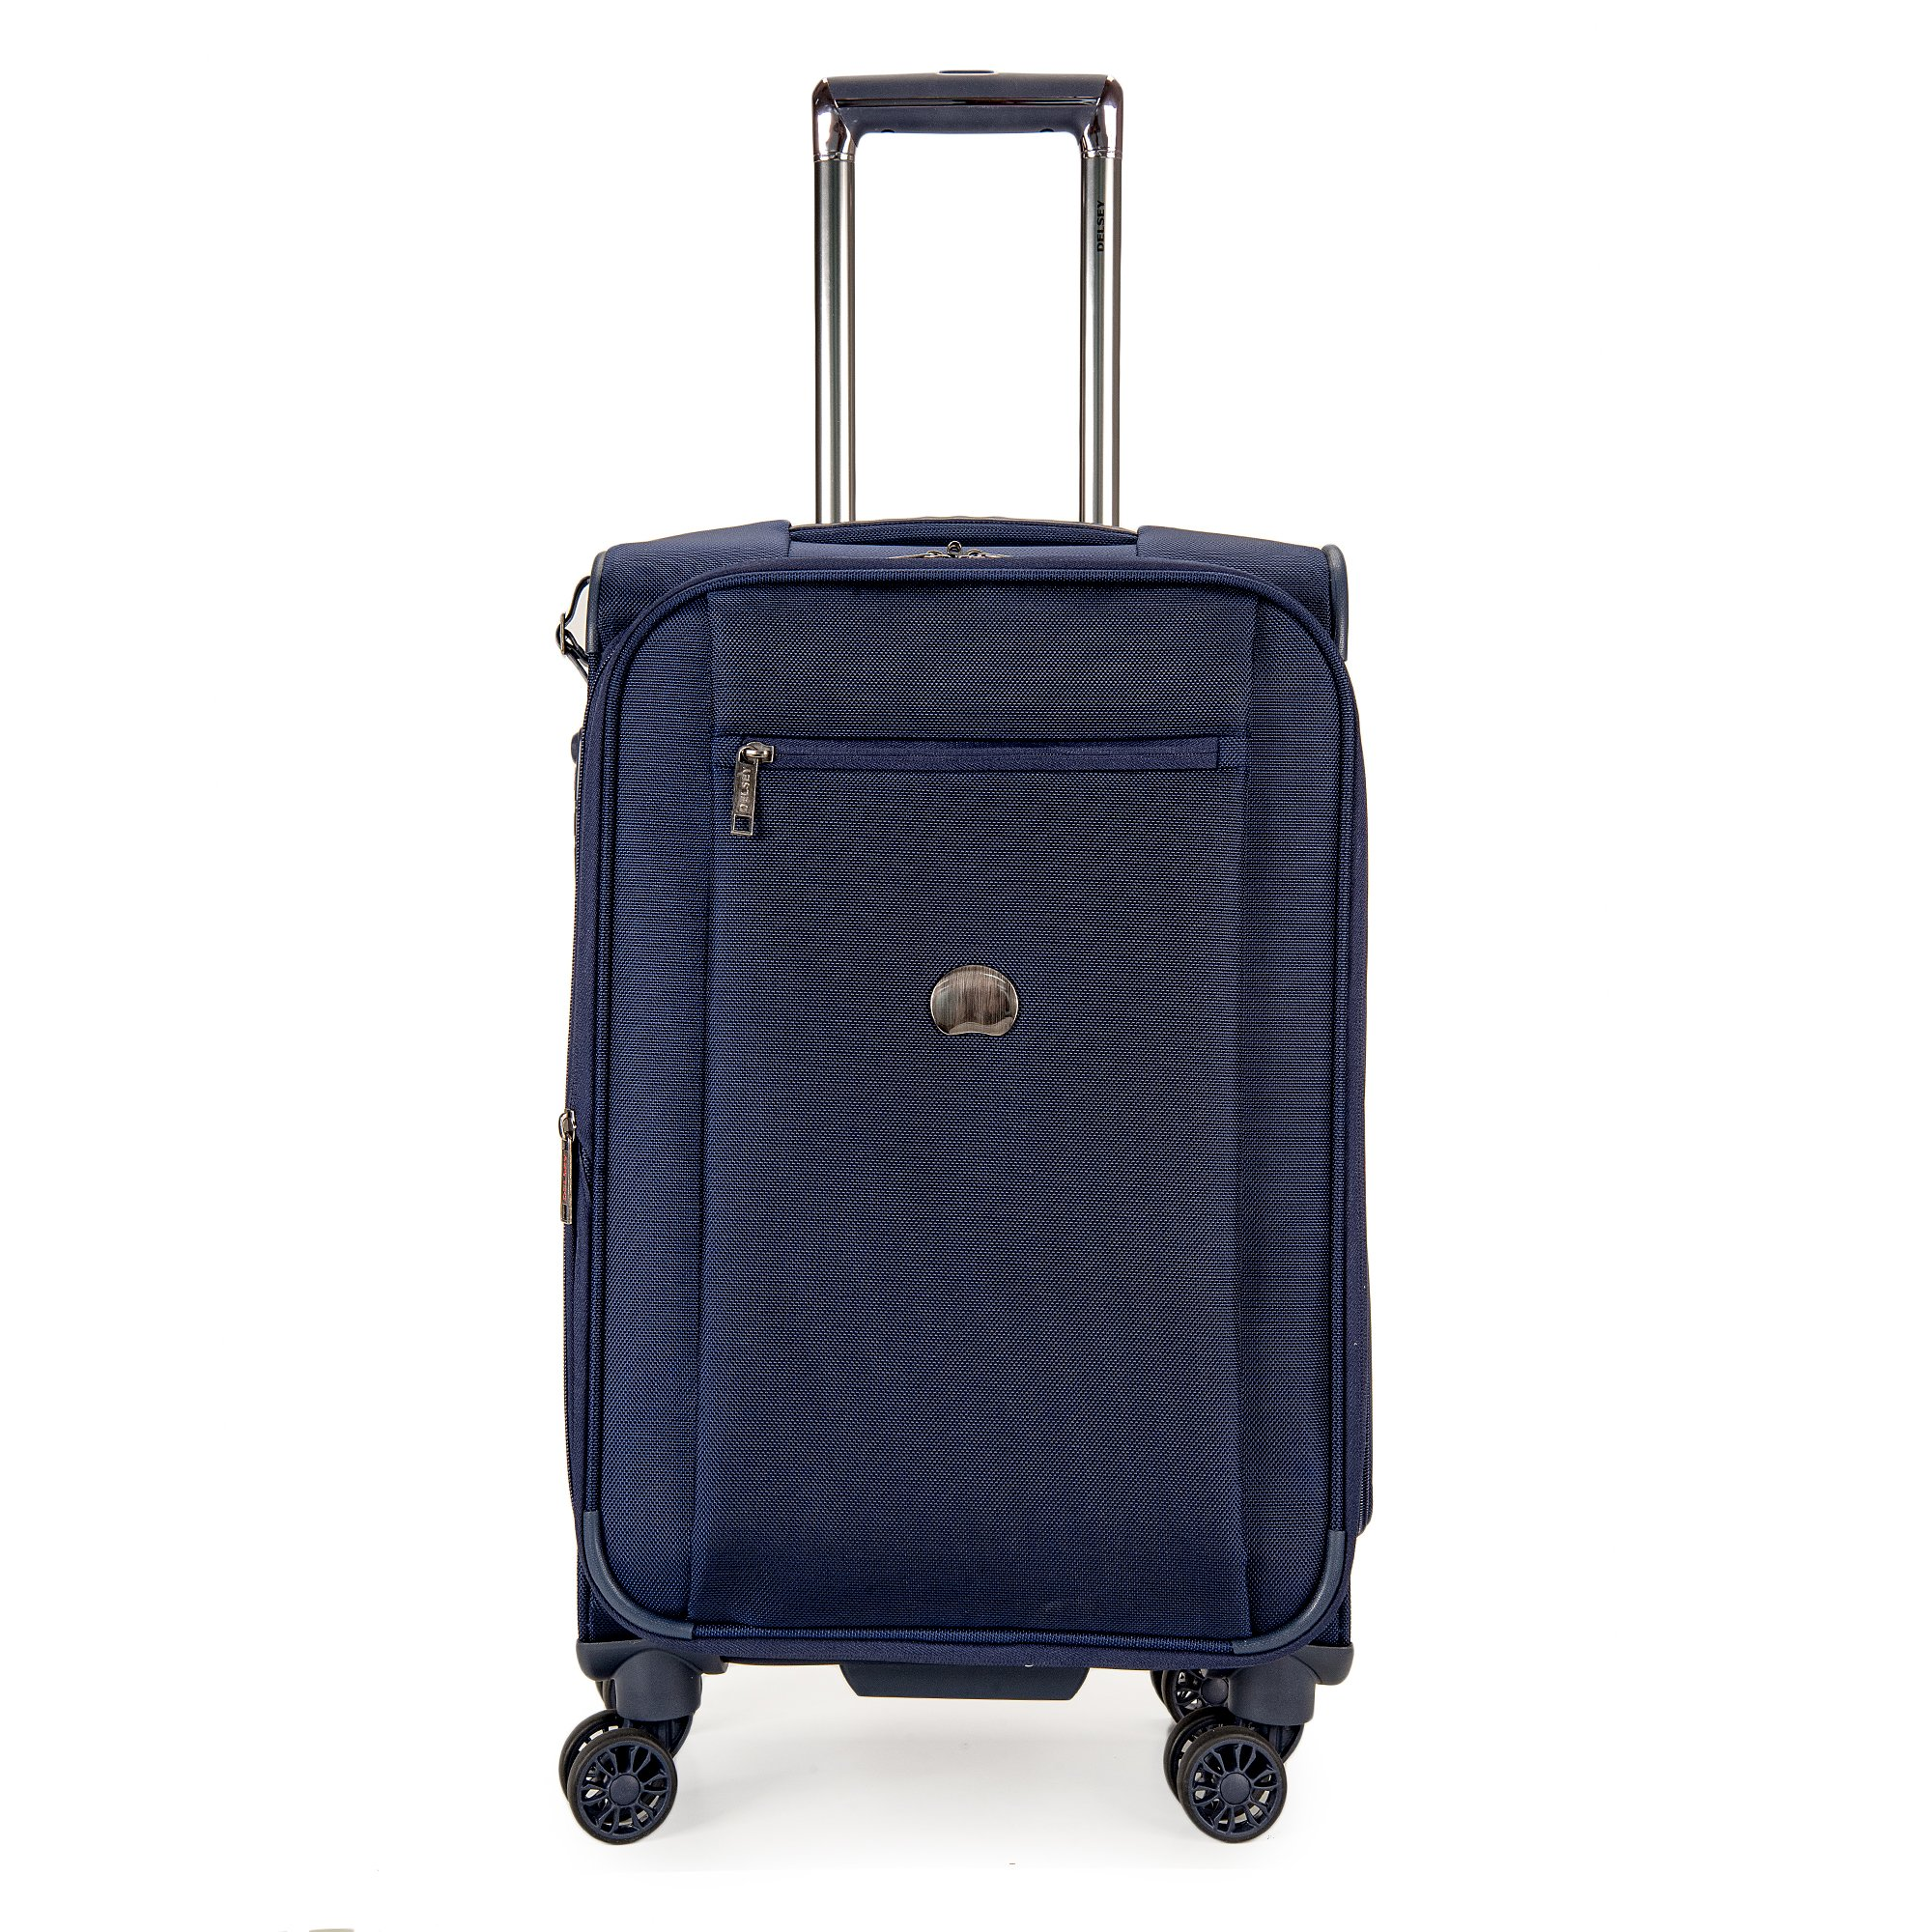 Delsey Luggage Montmartre 21 Inch Expandable Spinner Carry On Suitcase, Navy